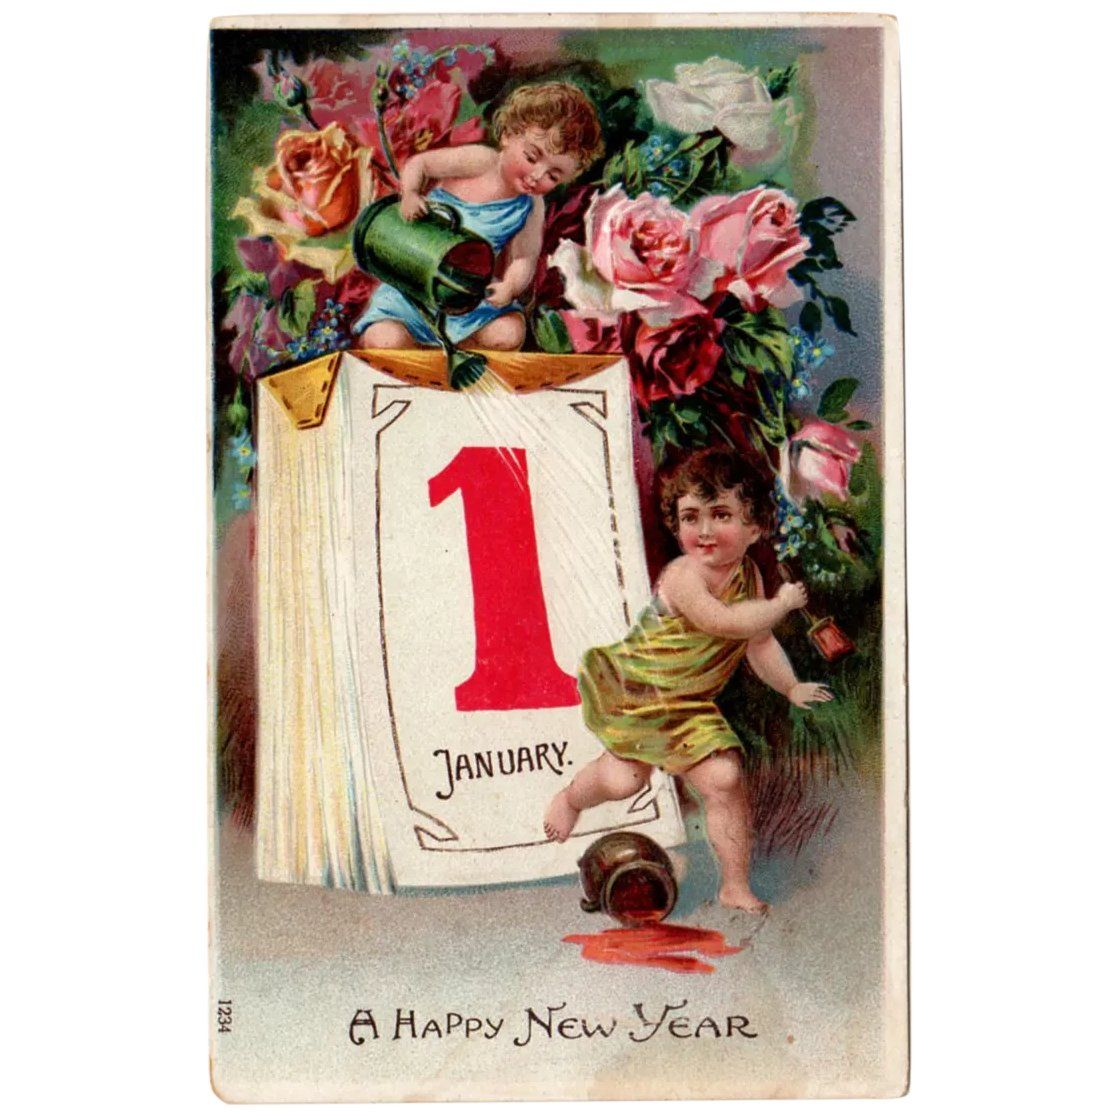 Vintage Embossed German Postcard for New Year's with